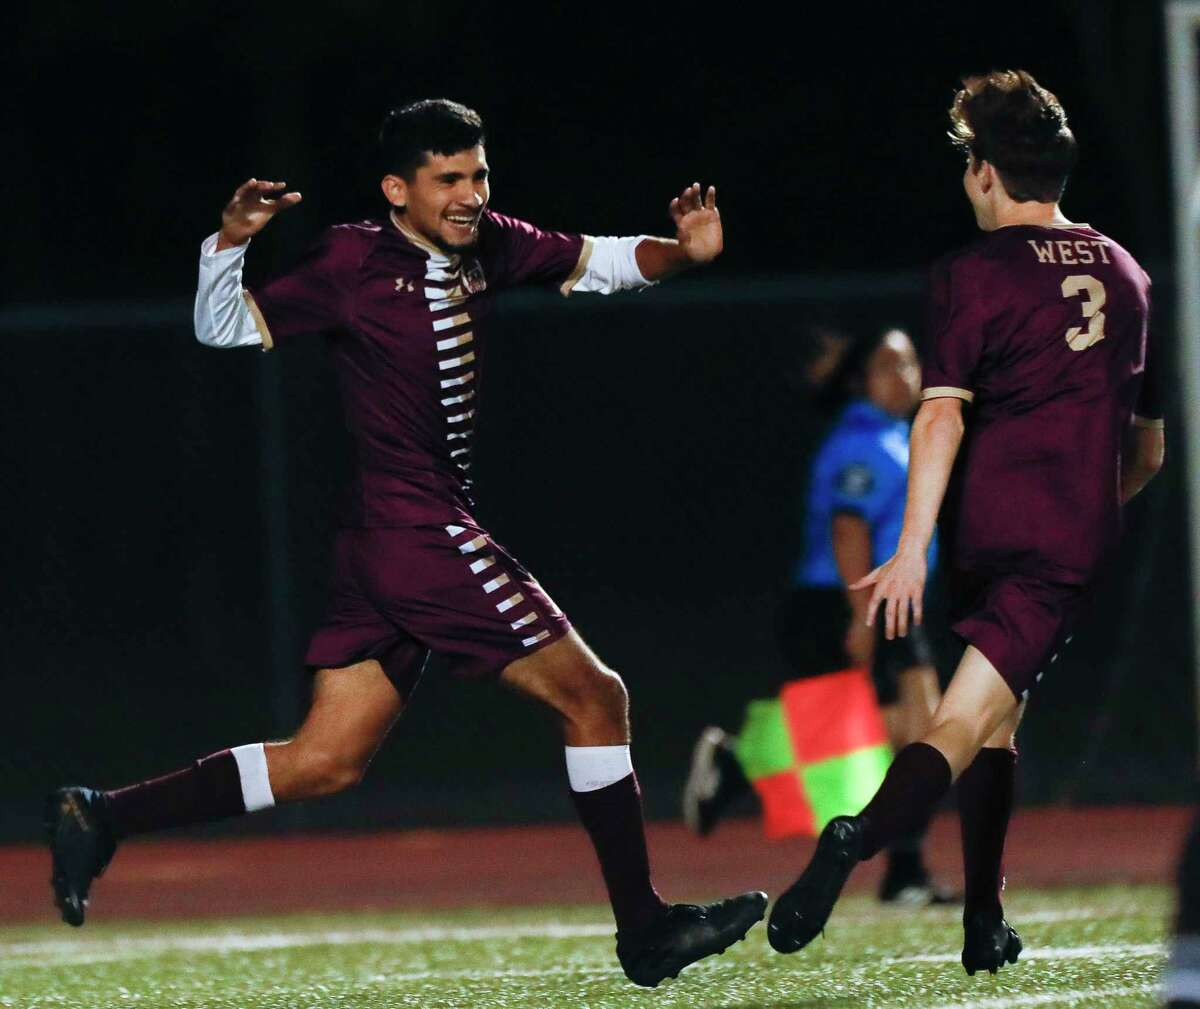 Magnolia West's Fernando Campos (11) reacts after scoring a goal during the first period of a District 19-5A high school soccer match at Magnolia West High School, Wednesday, March 10, 2021, in Magnolia.